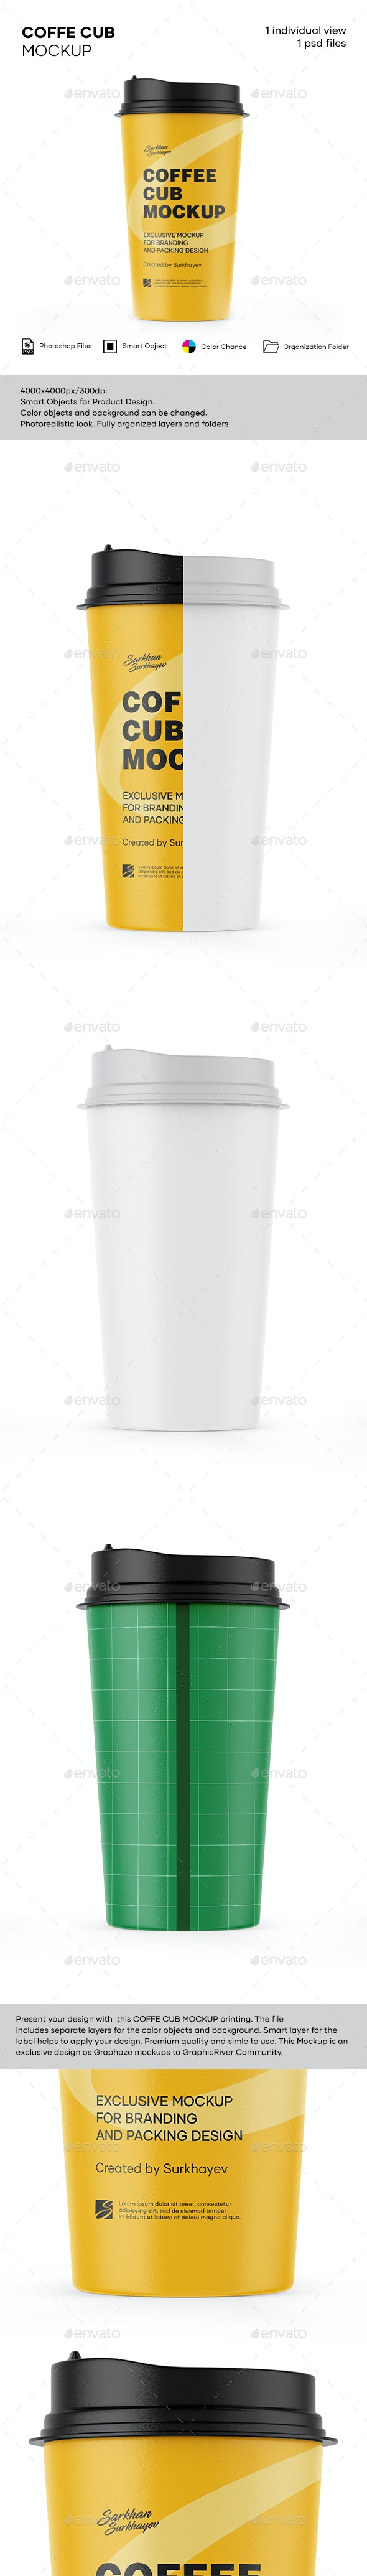 Matte Coffee Cup Mockup. - Product Mock-Ups Graphics